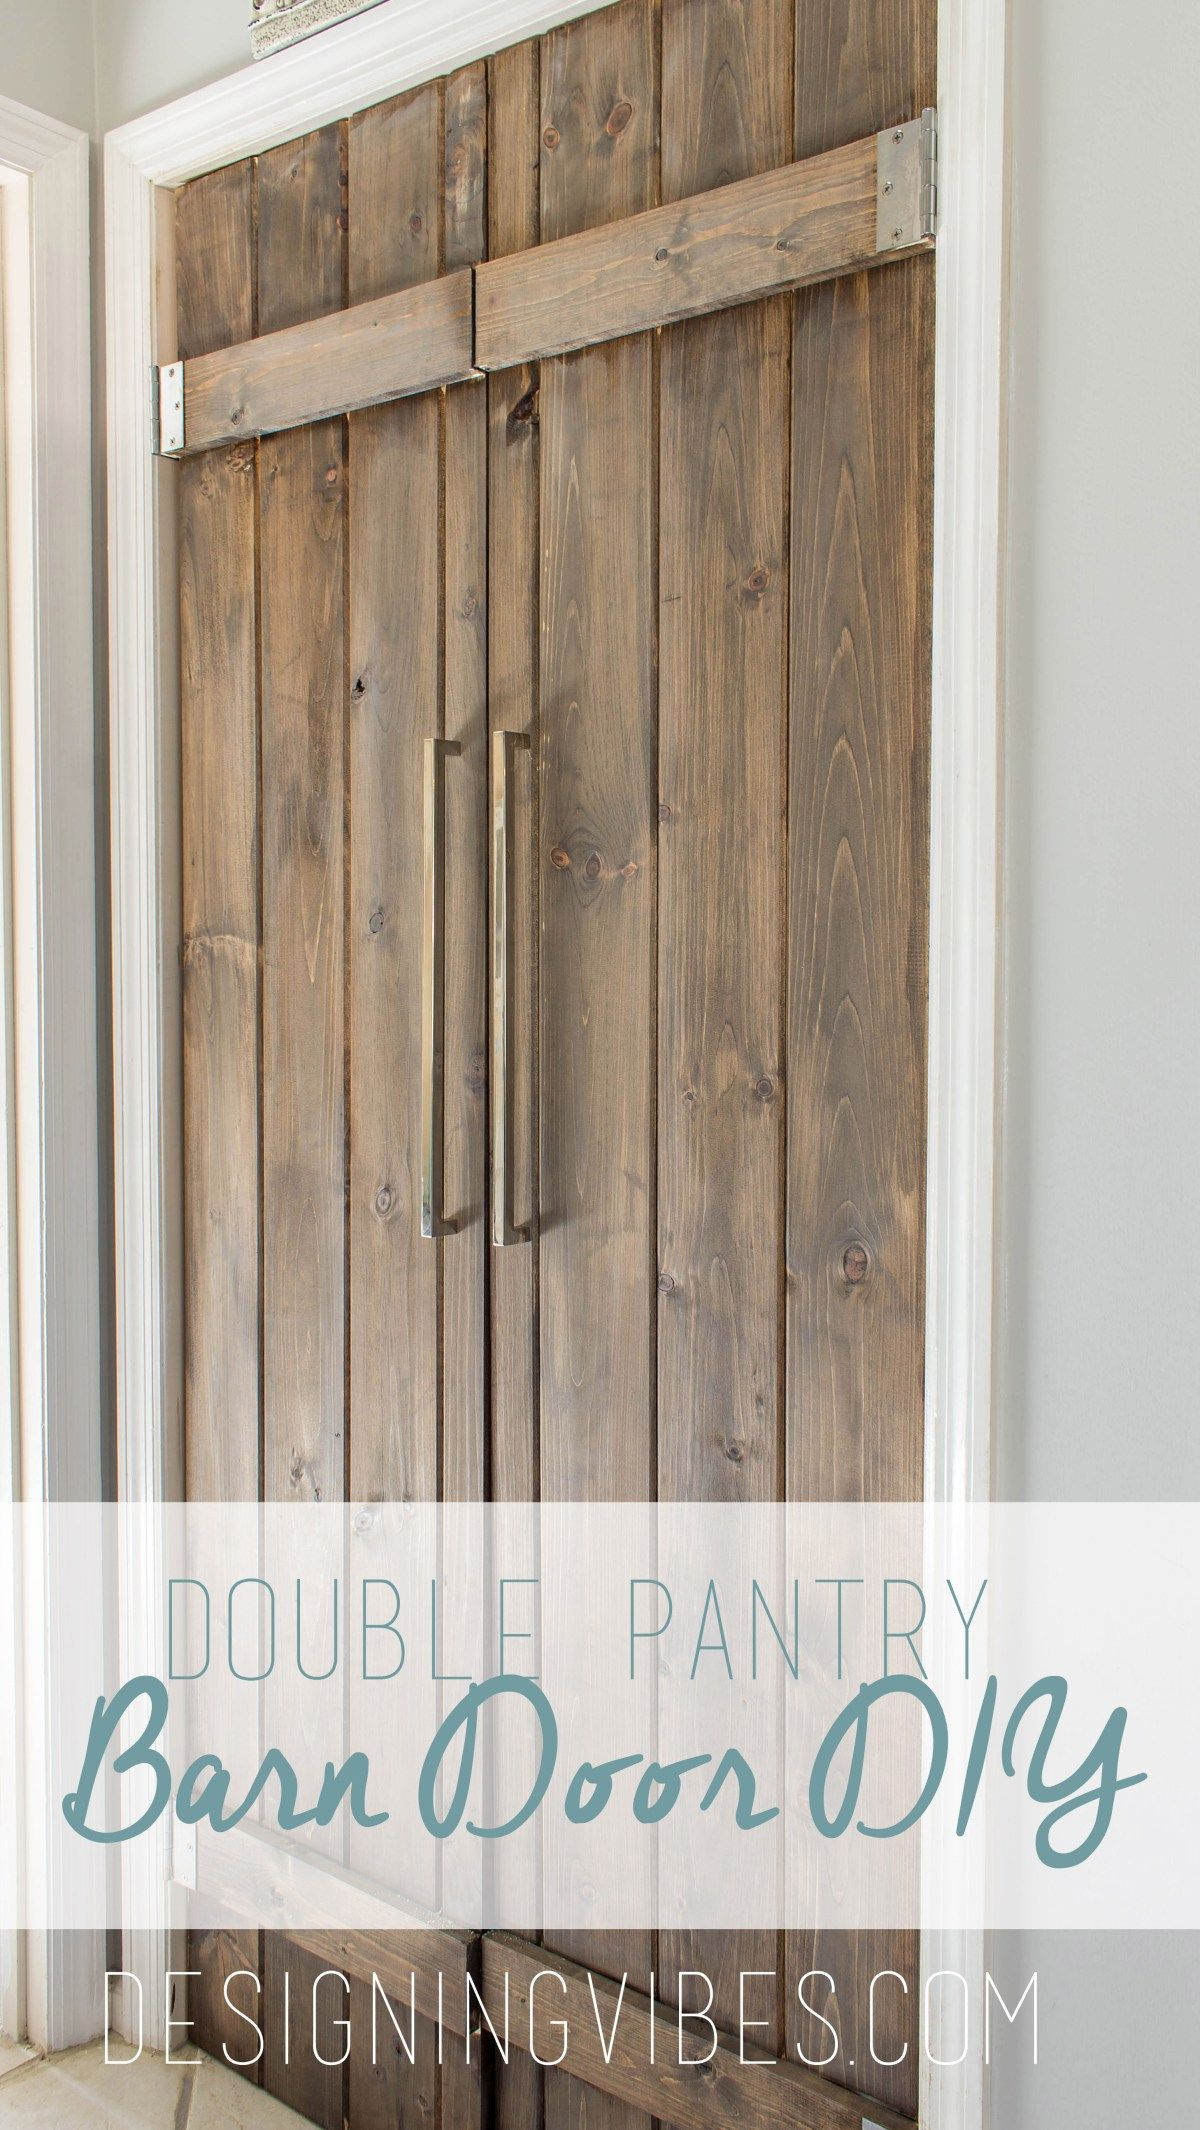 Double Pantry Barn Door Diy Under 90 Bifold Pantry Door Diy Barn Door Pantry Diy Barn Door Cheap Barn Doors